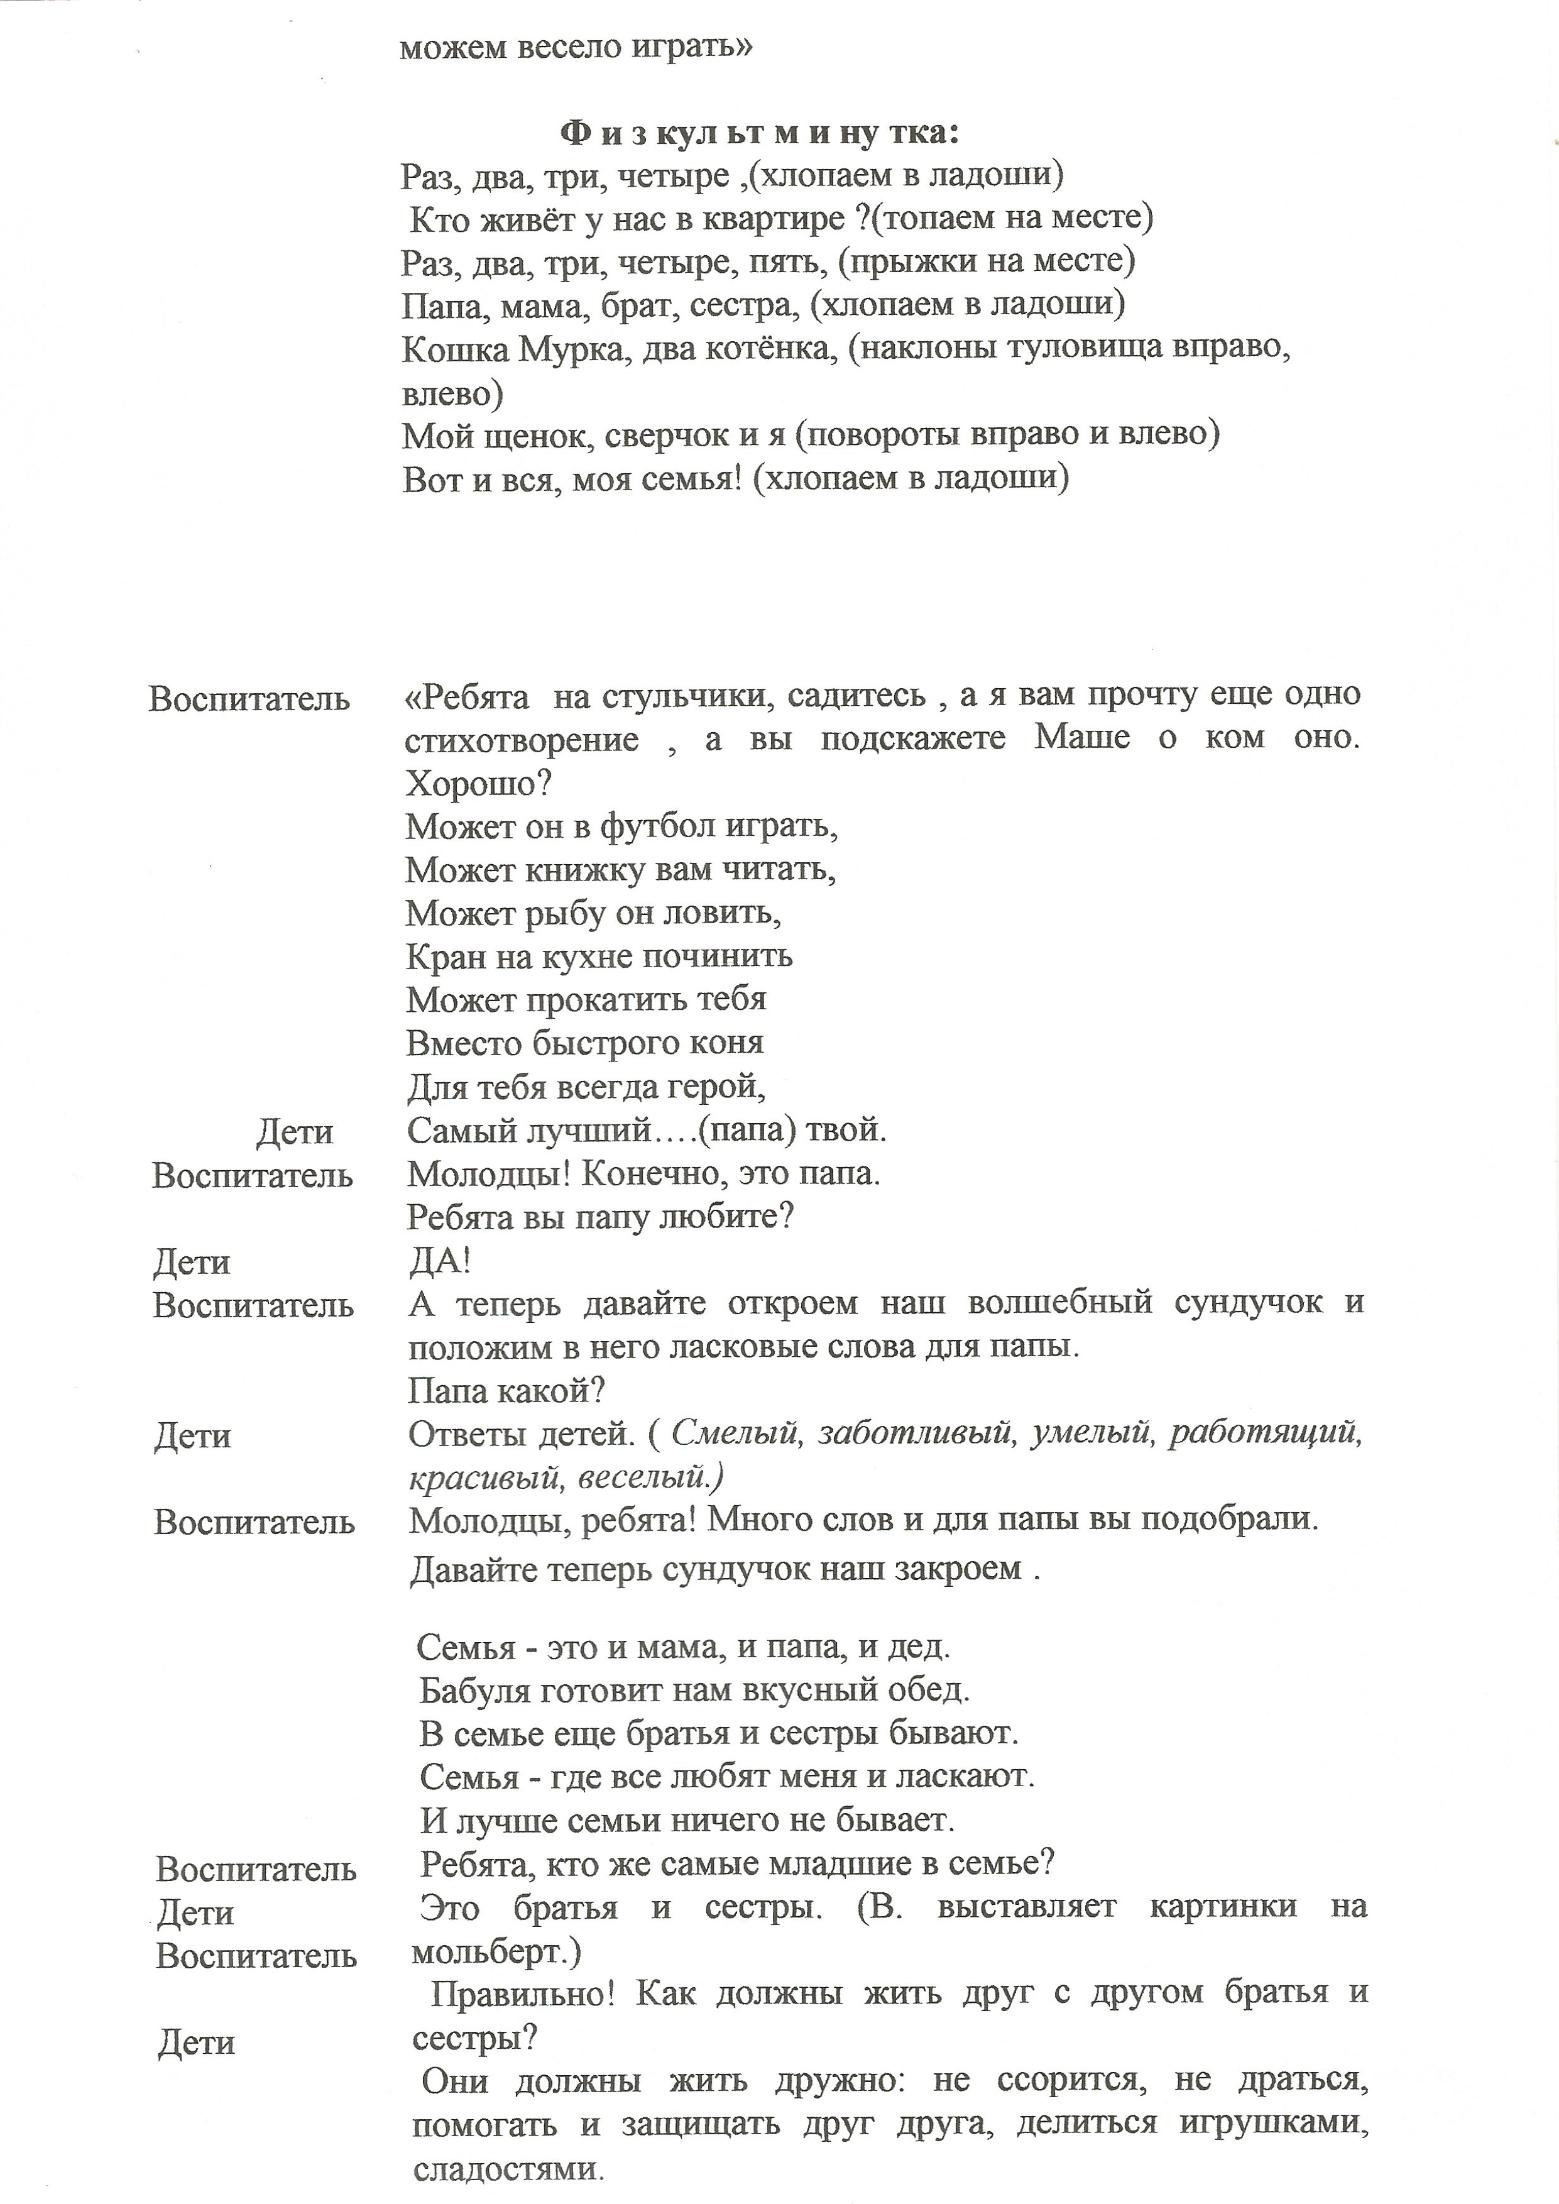 C:\Users\мардановы\Documents\Scan9.tif